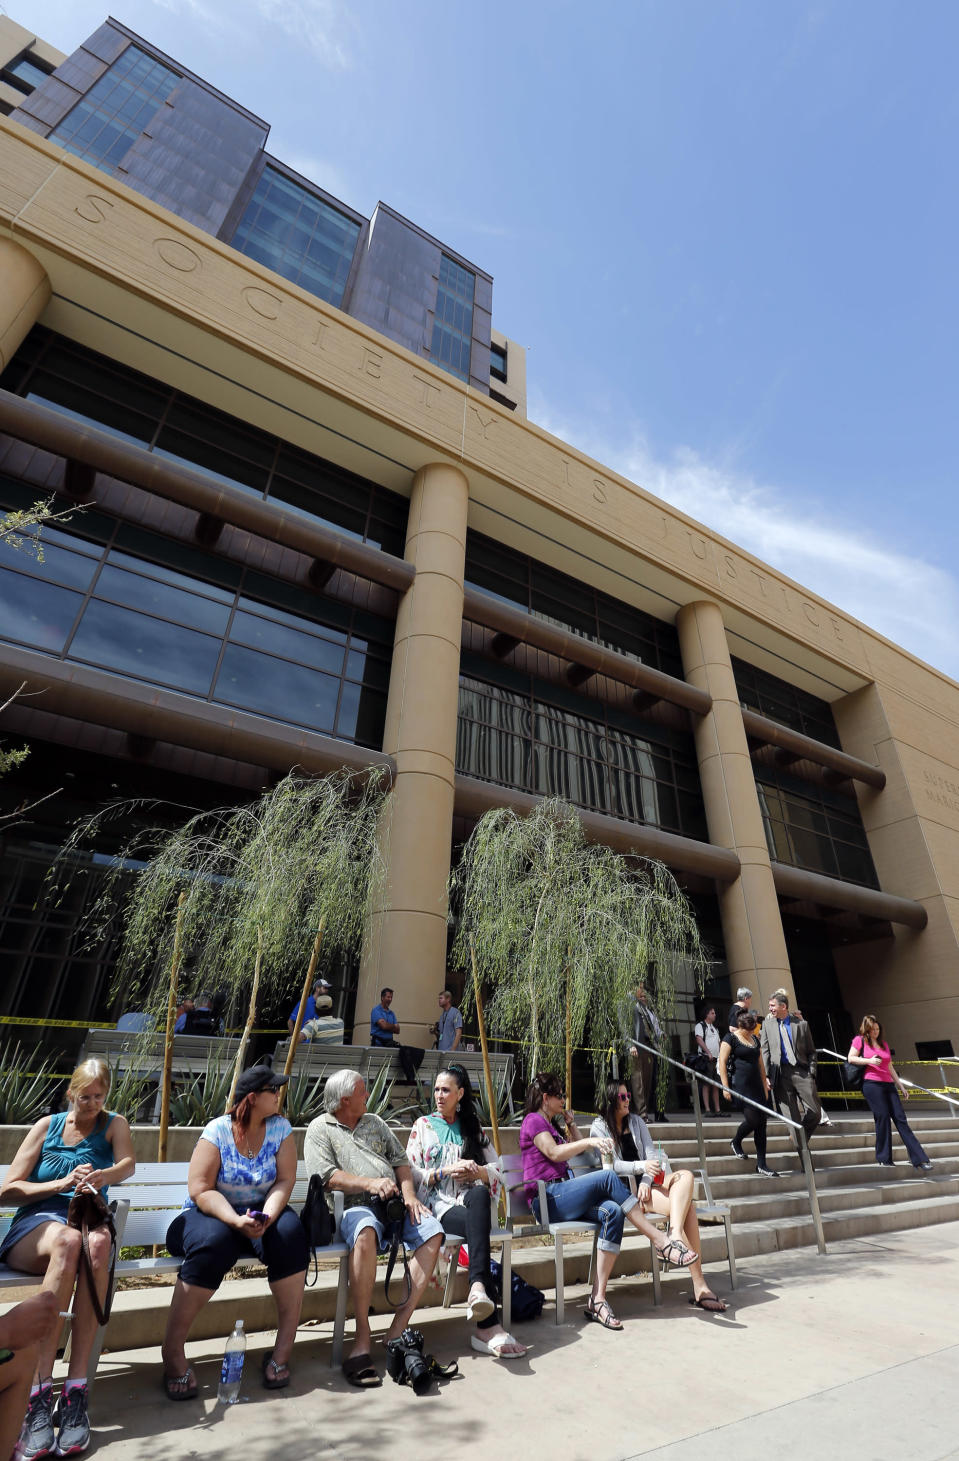 People gather outside Superior Court, Wednesday, May 8, 2013 in downtown Phoenix. Jurors reached a verdict Wednesday in the trial of Jodi Arias, who is accused of murdering her one-time boyfriend in Arizona. Arias is charged with first-degree murder in the June 2008 death of Travis Alexander, a motivational speaker and salesman, at his suburban Phoenix home. (AP Photo/Matt York) (AP Photo/Matt York)